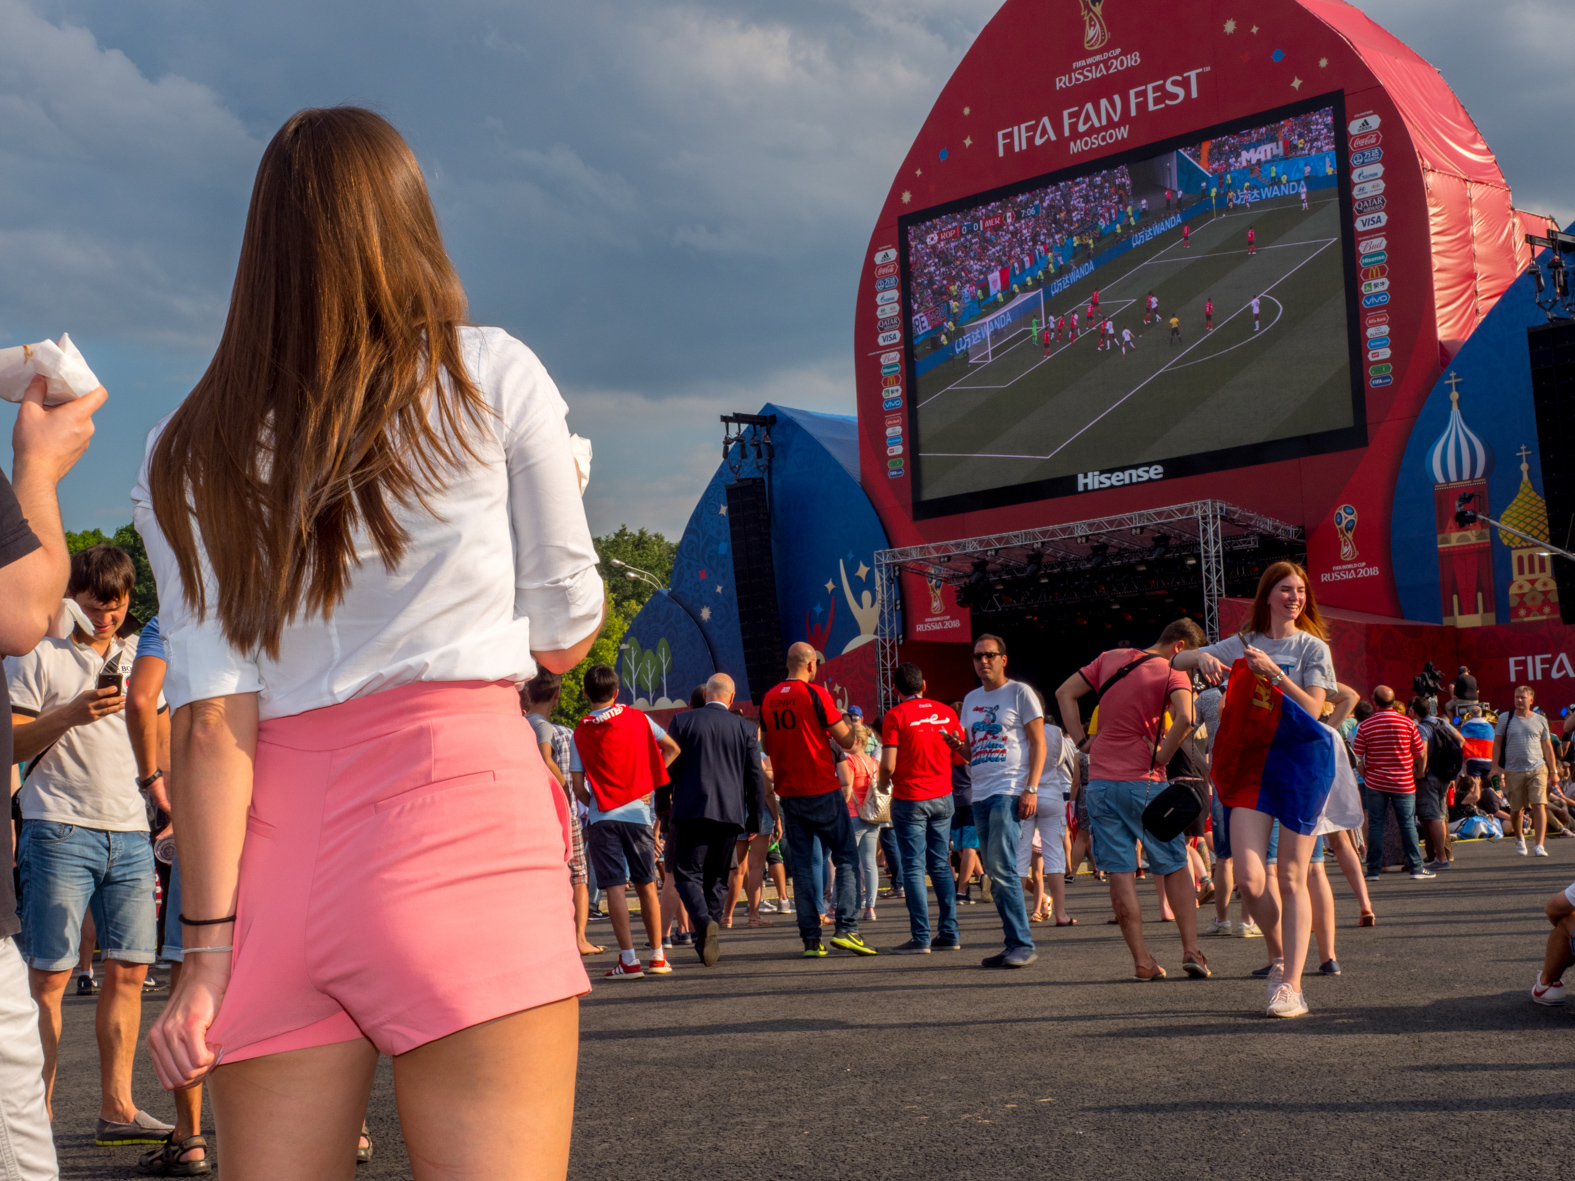 The FIFA Fan Fest located at Vorobyovy Gory (Sparrow Hills) Moscow, has a venue Capacity of 25,000. The site provides a spectacular view down the hill, directly towards Luzhniki Stadium and Moscow City. The 21st FIFA World Cup football tournament took place in Russia in 2018. It was the first World Cup to be held in Eastern Europe and the eleventh time that it has been held in Europe. For the first time the tournament took place on two continents – Europe and Asia. All but two of the stadium venues were in European Russia.